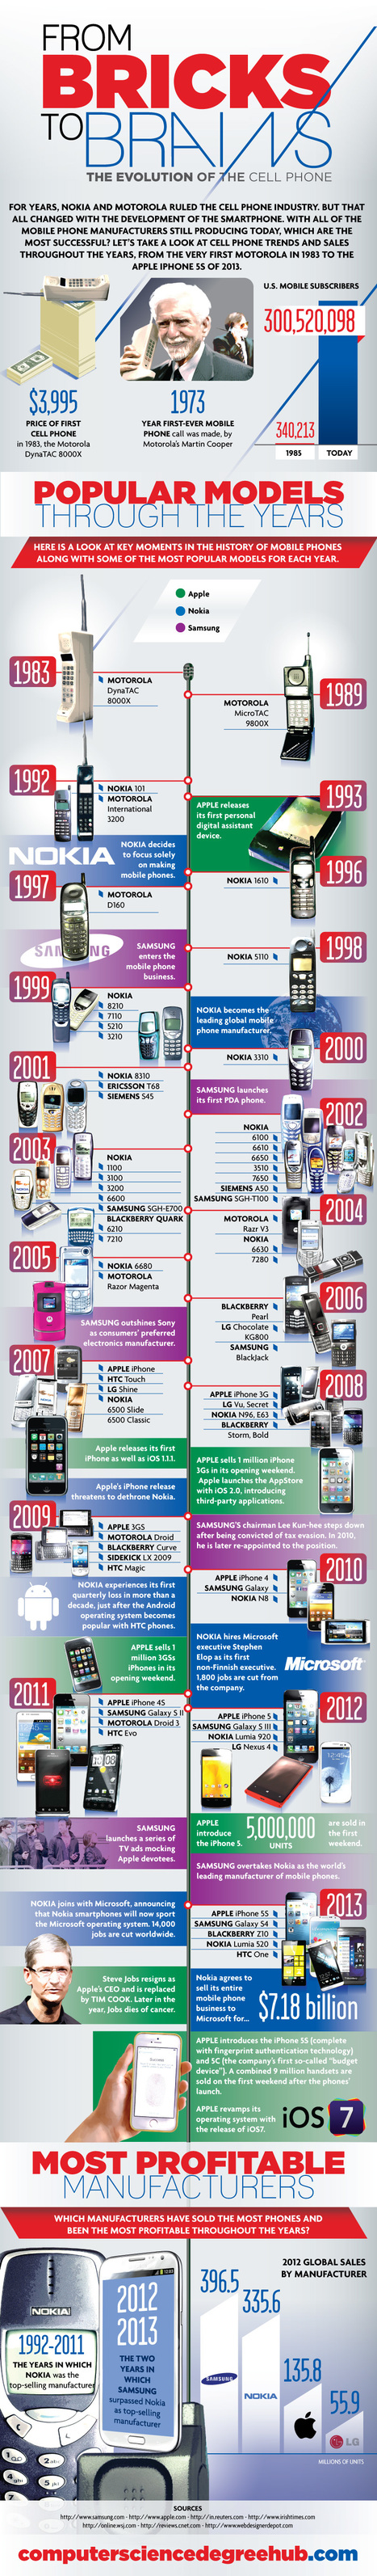 INFOGRAPHIC: From Bricks to Brains - The Evolution of the Cell Phone   Technology in the Classroom   Scoop.it